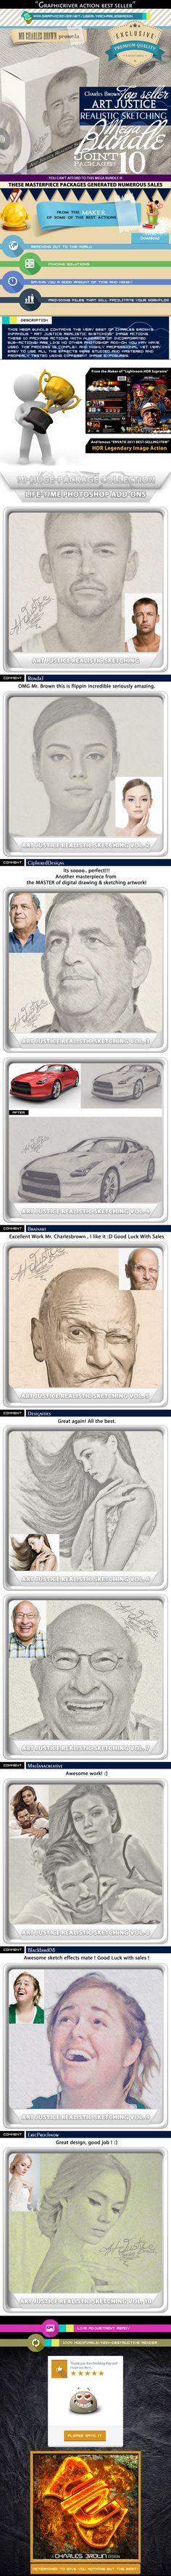 Charles browns blueprint pure art generator fonts logos icons charles browns blueprint pure art generator fonts logos icons pinterest charles brown brown and generators malvernweather Image collections